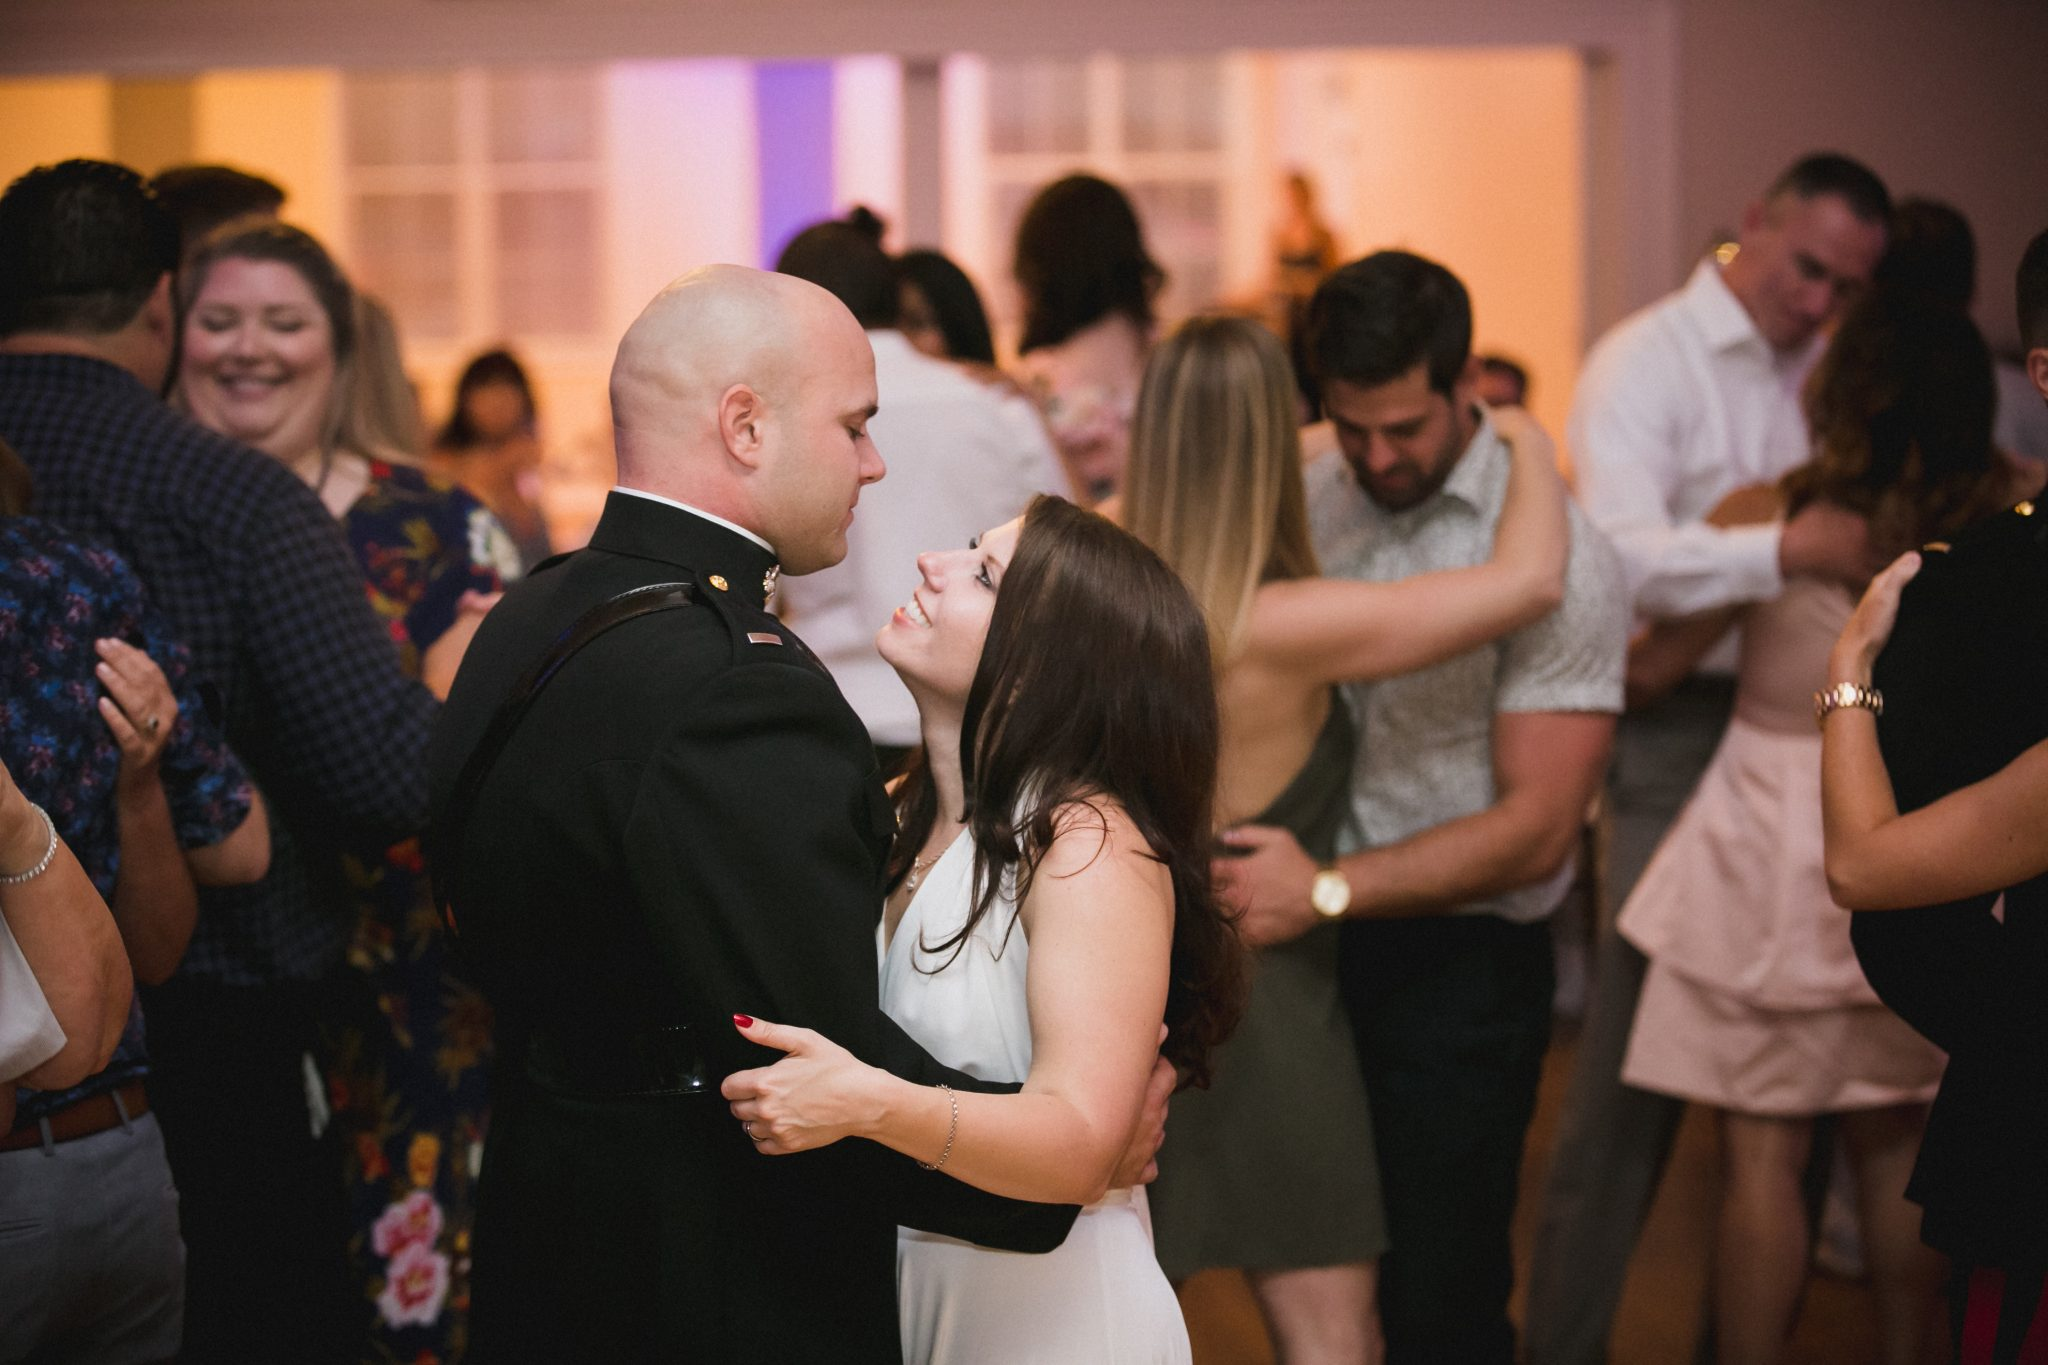 Bride smiles at the groom during their first dance